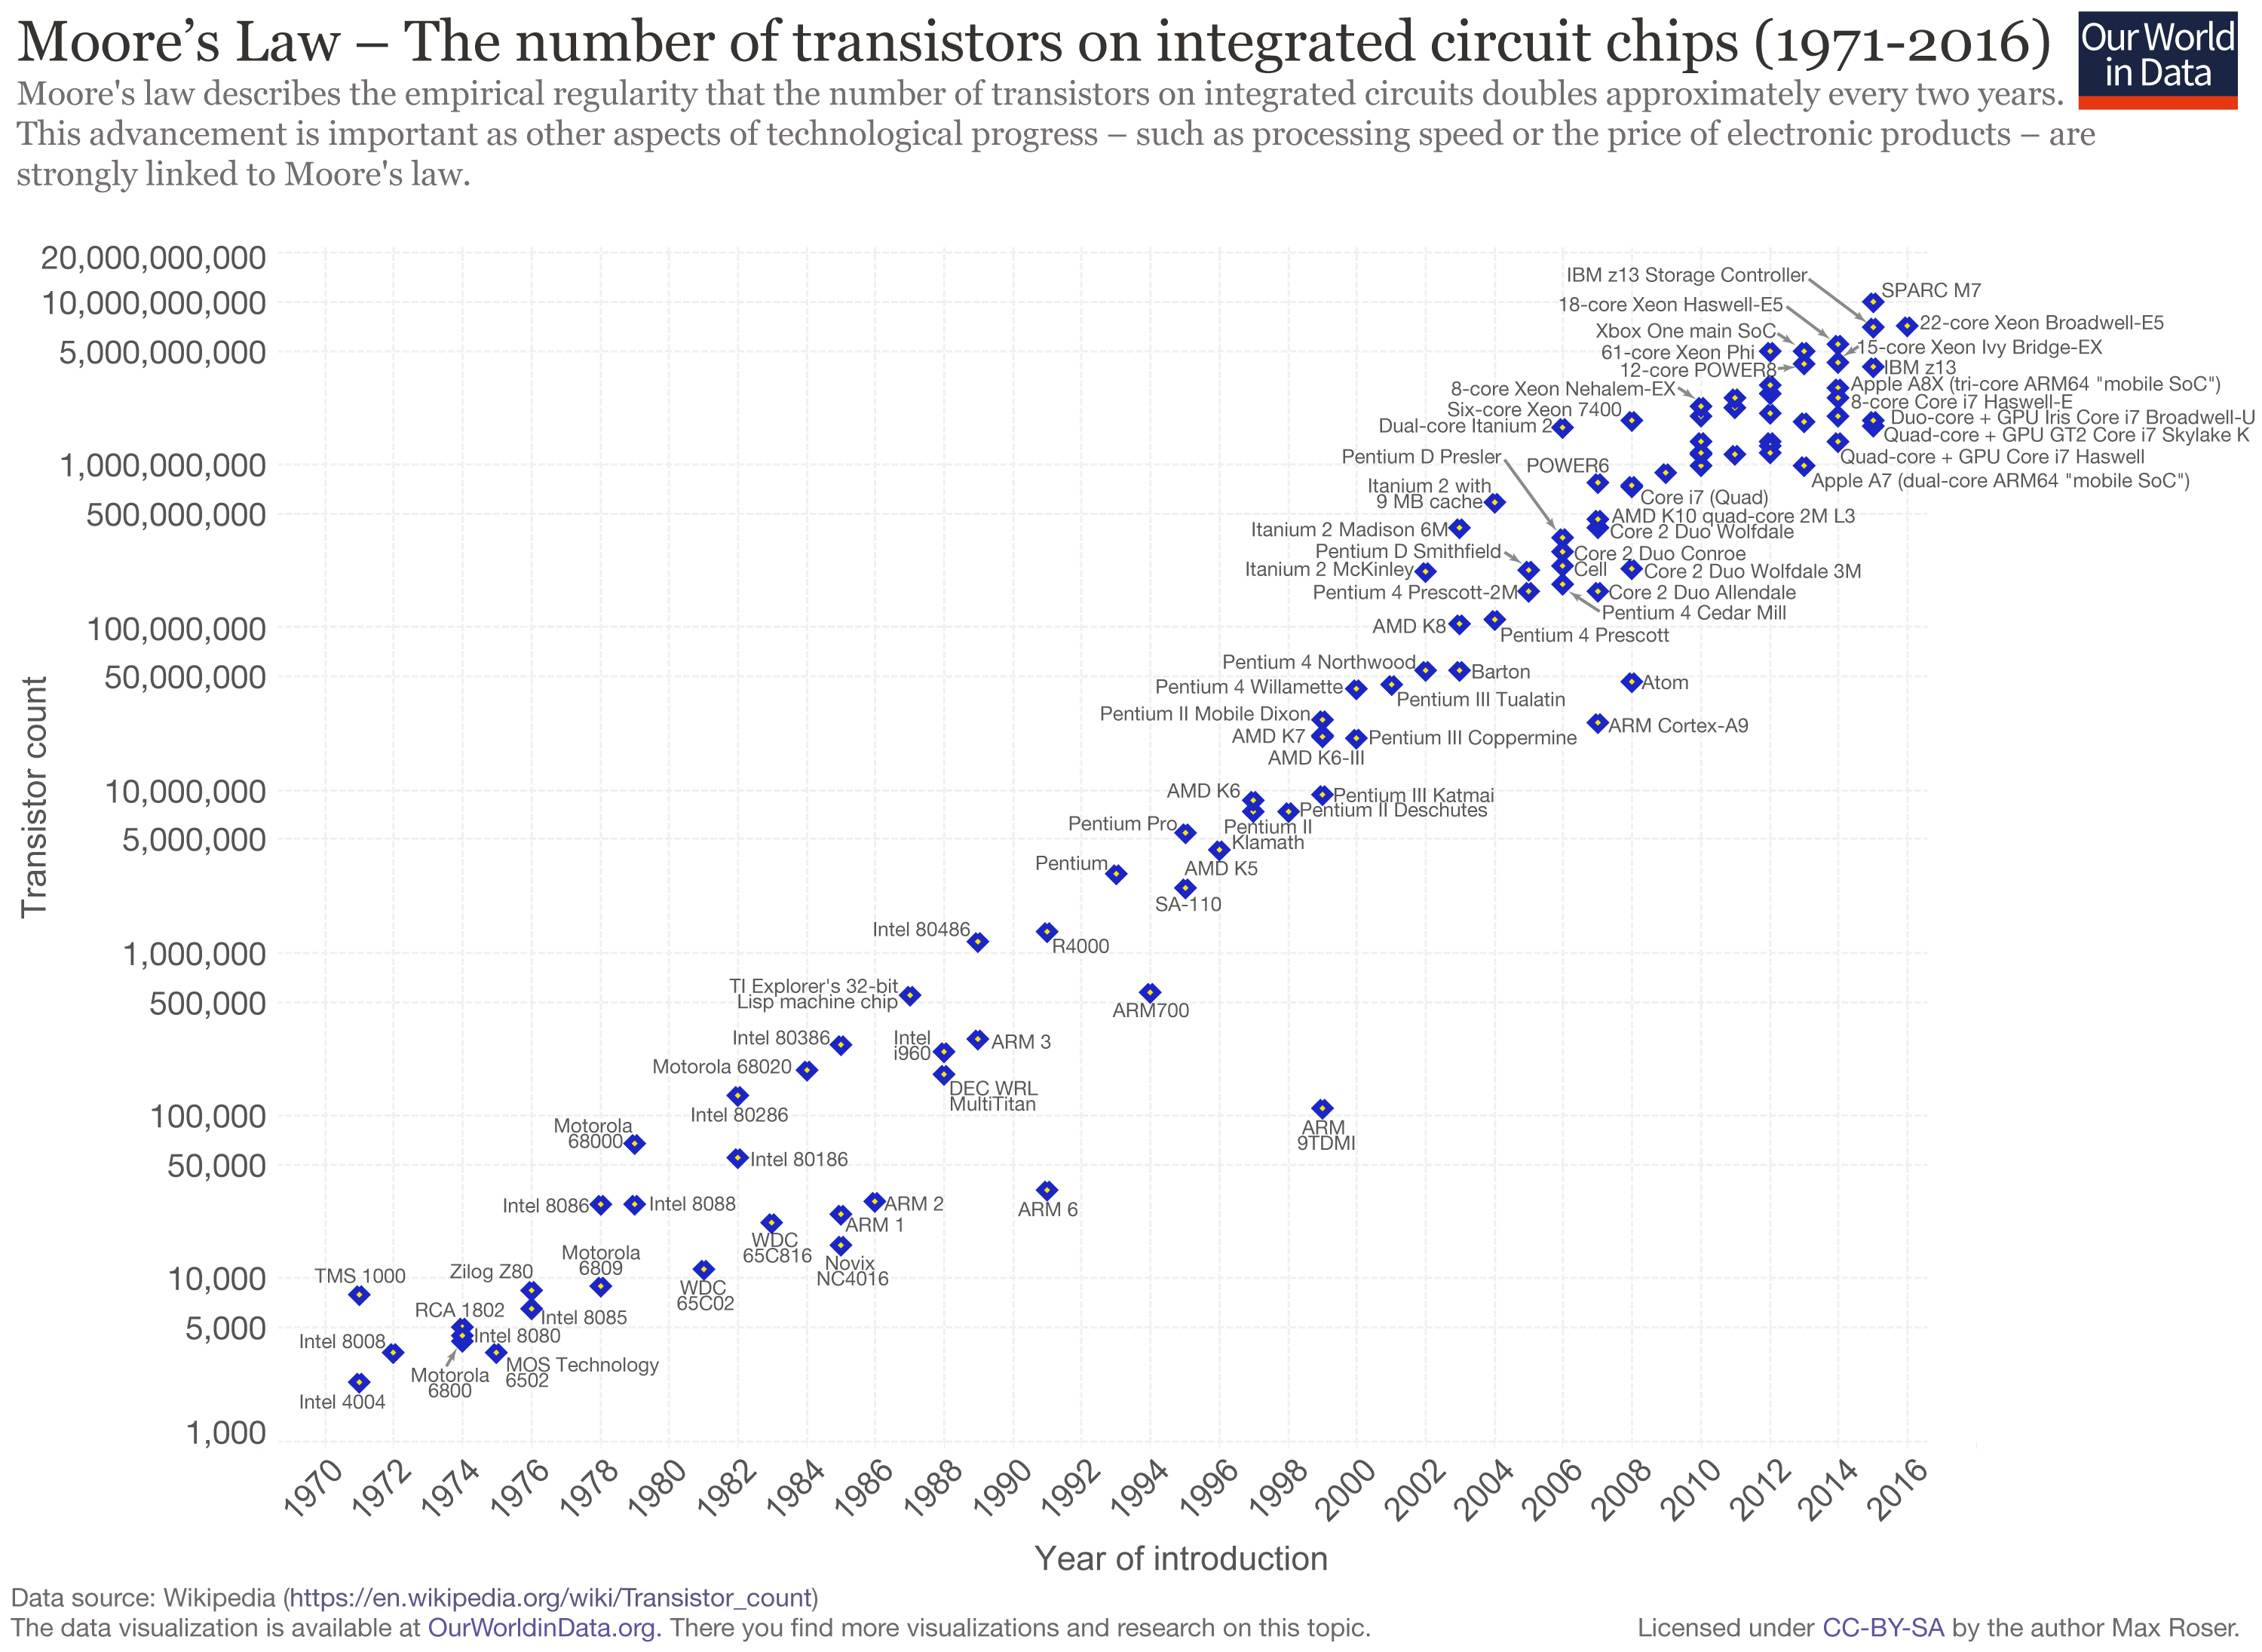 Moore's_Law_Transistor_Count_1971-2016